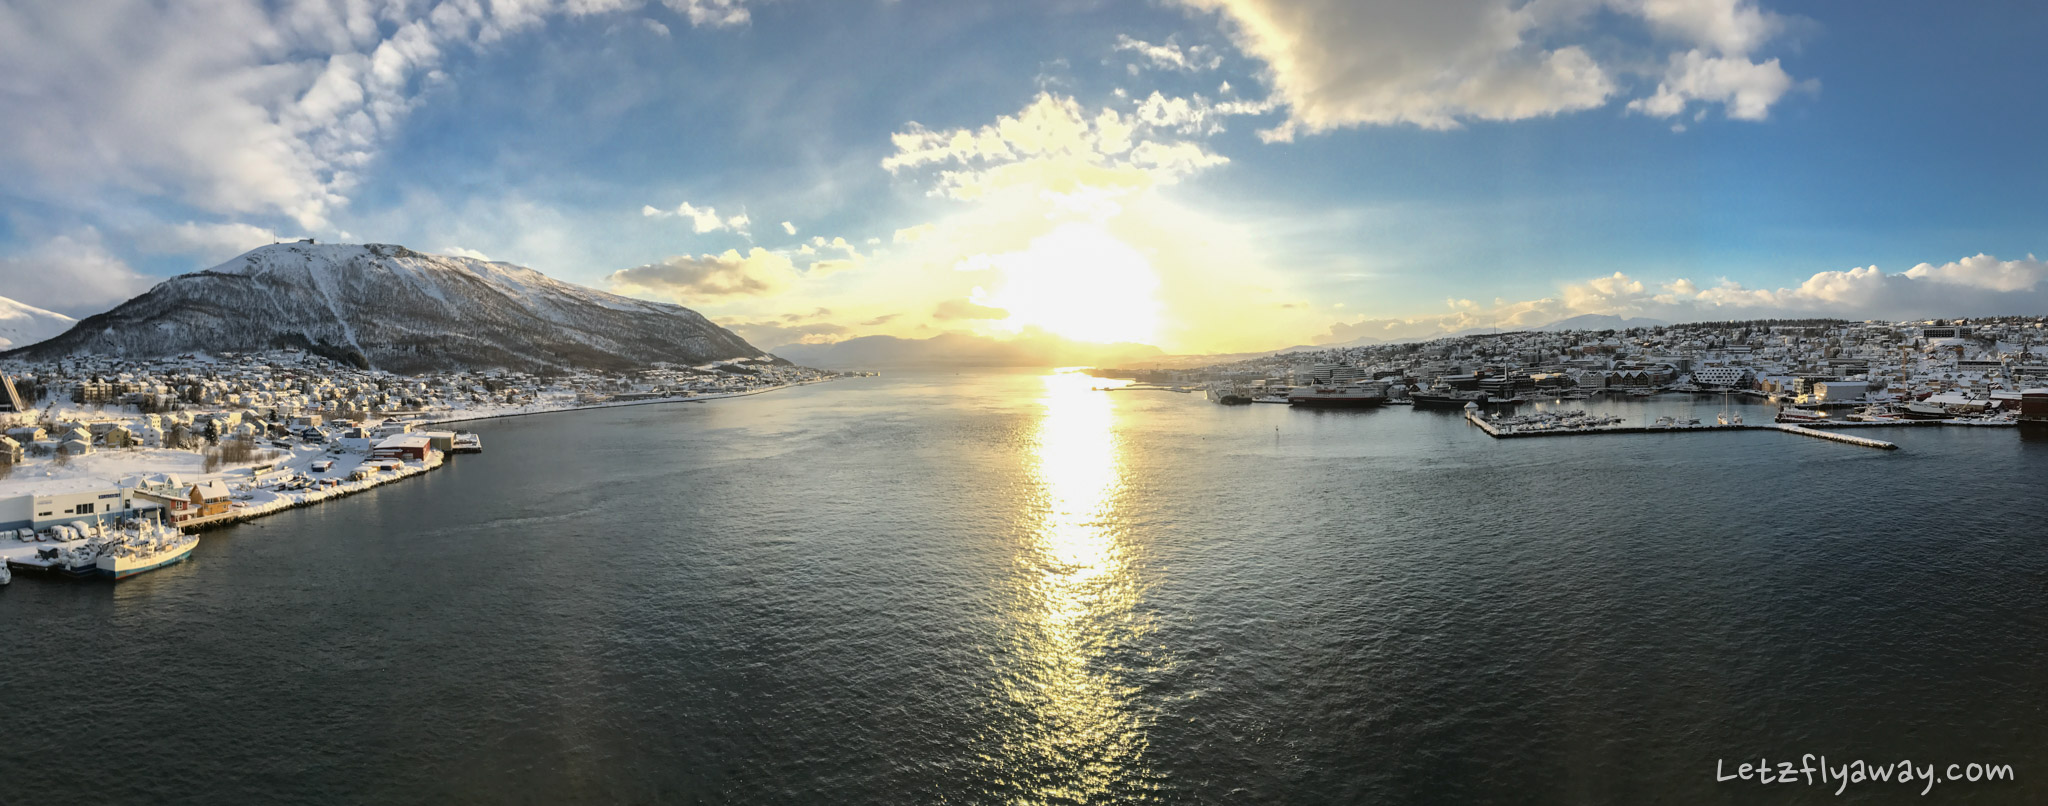 View from tromso bridge